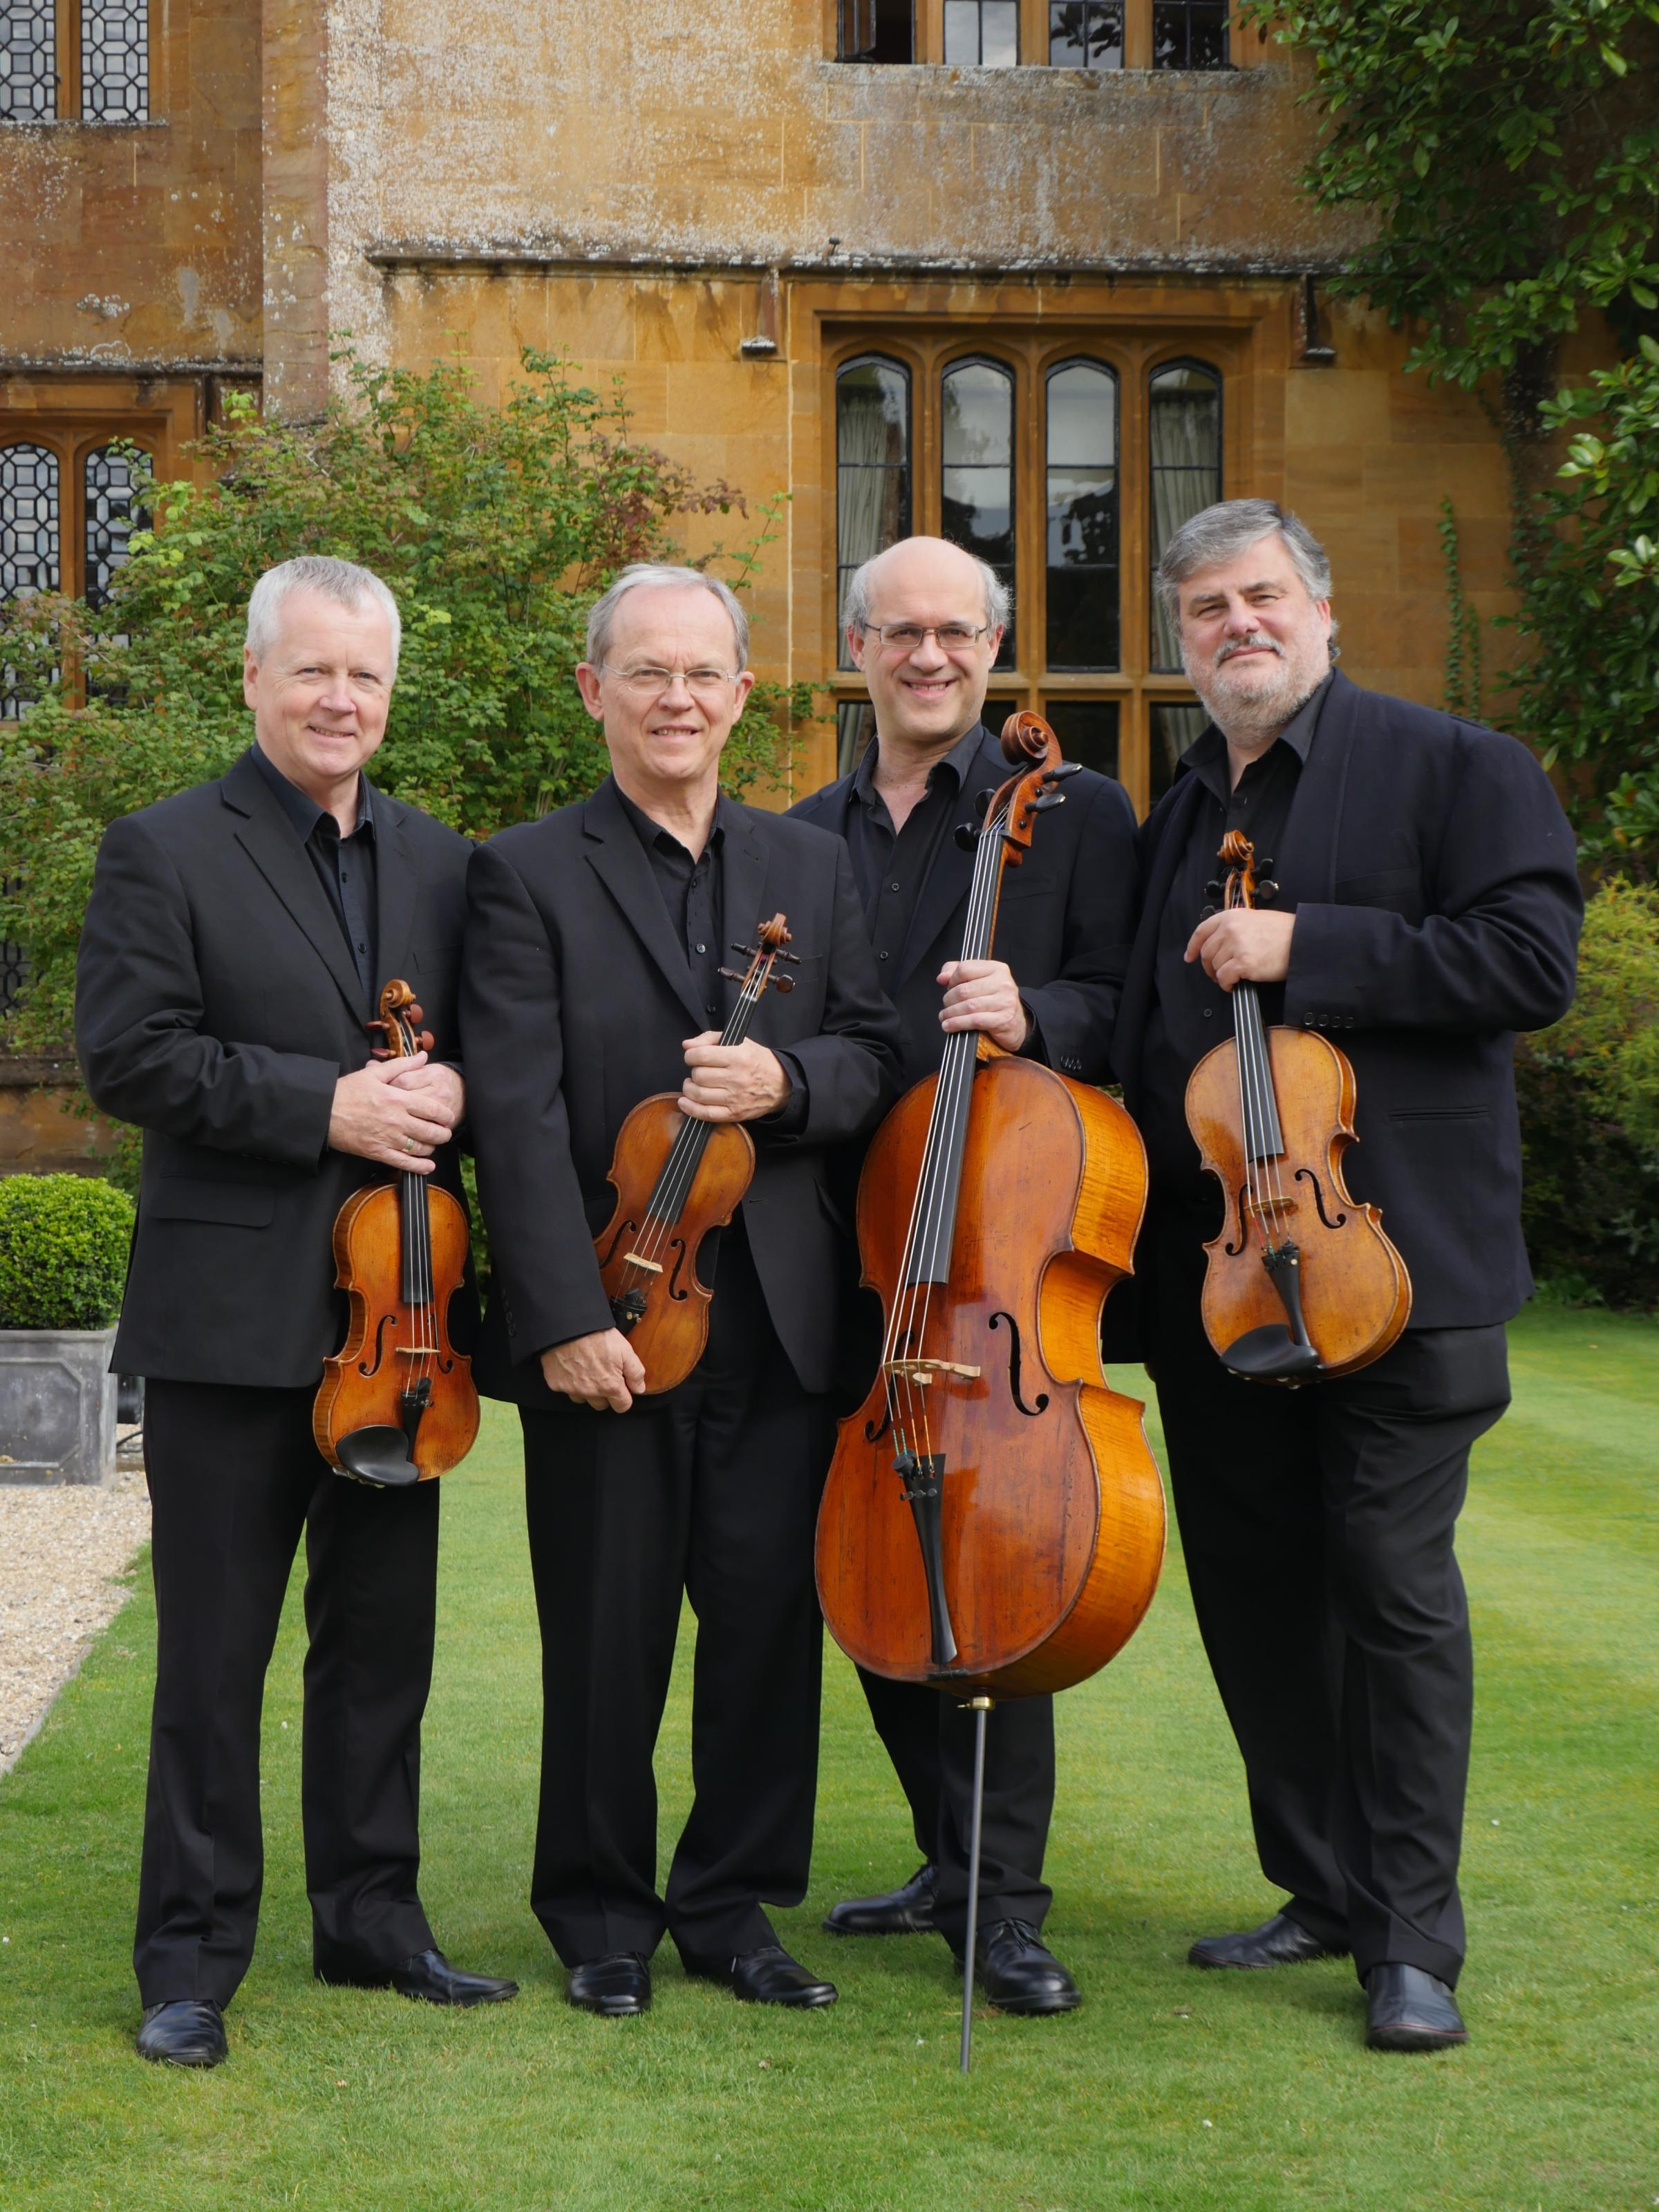 The Coull Quartet